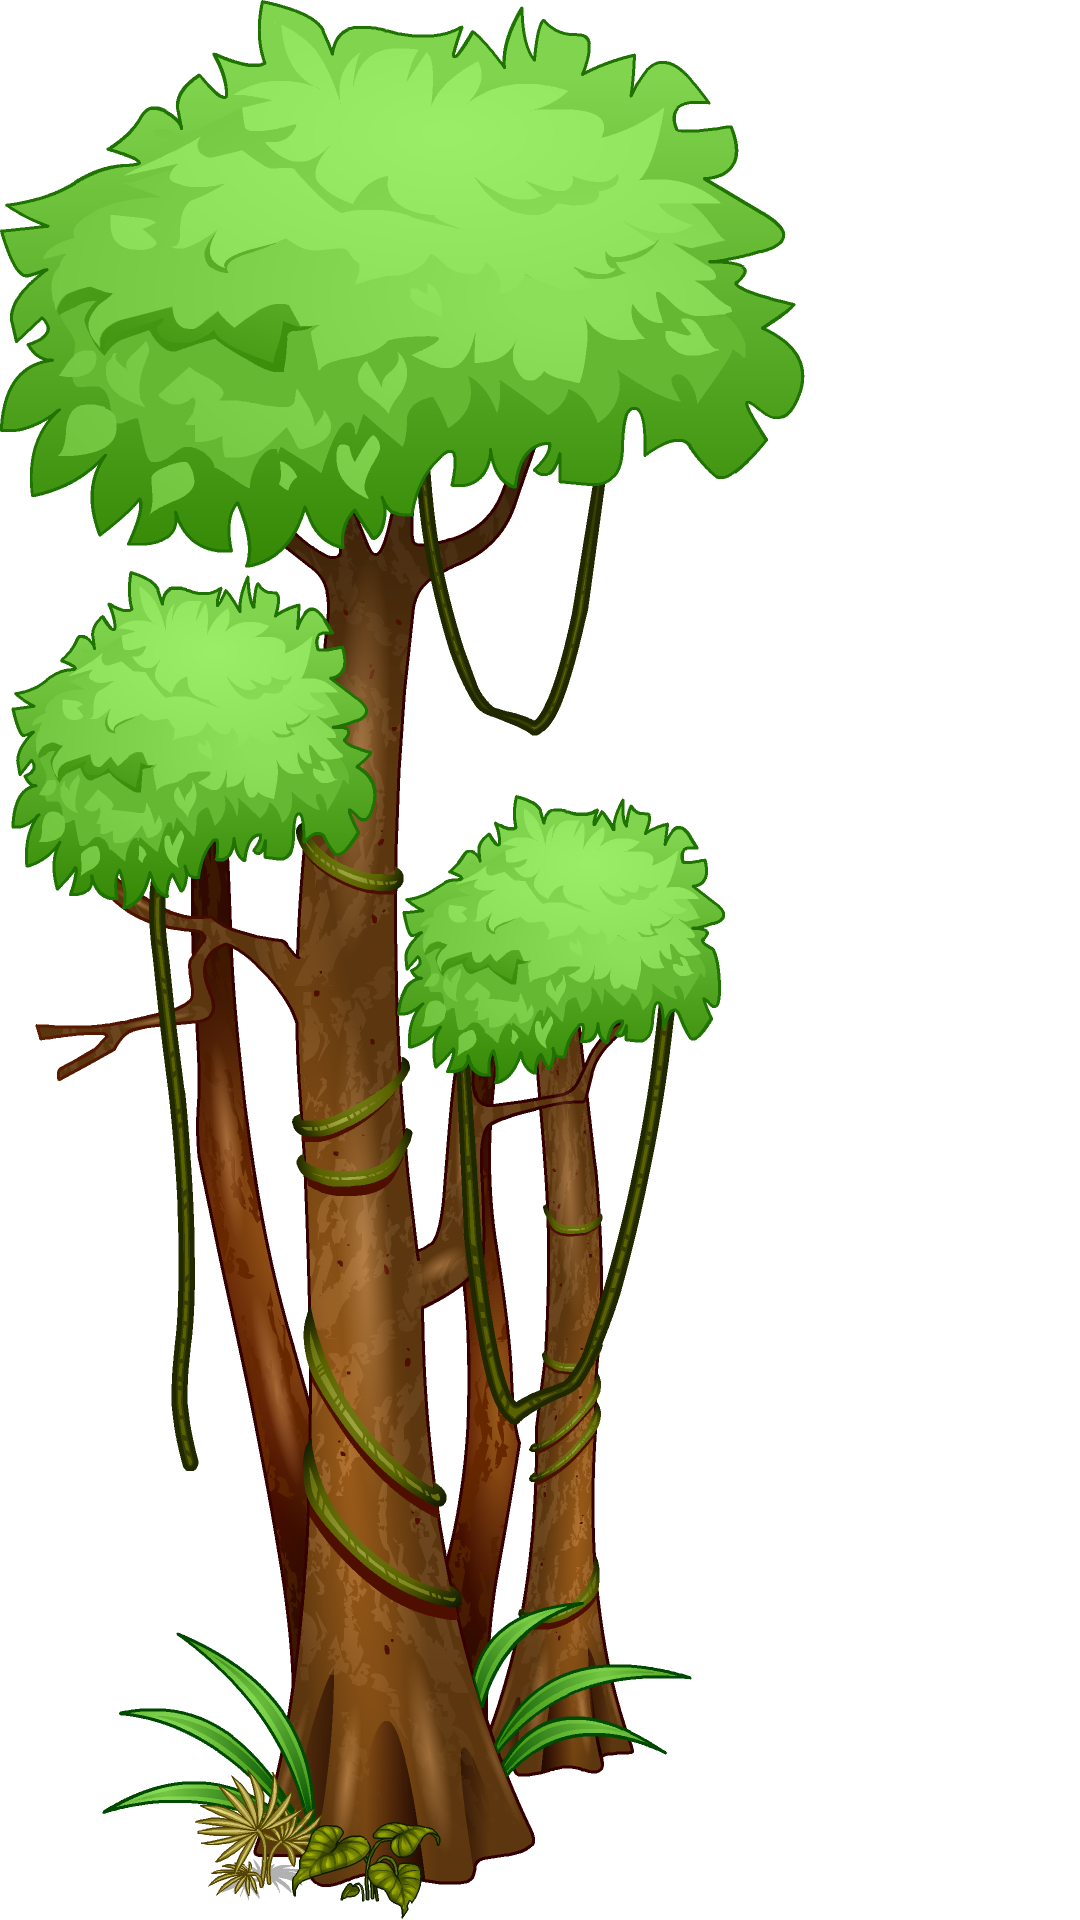 Tree clipart forest. Trees black and white